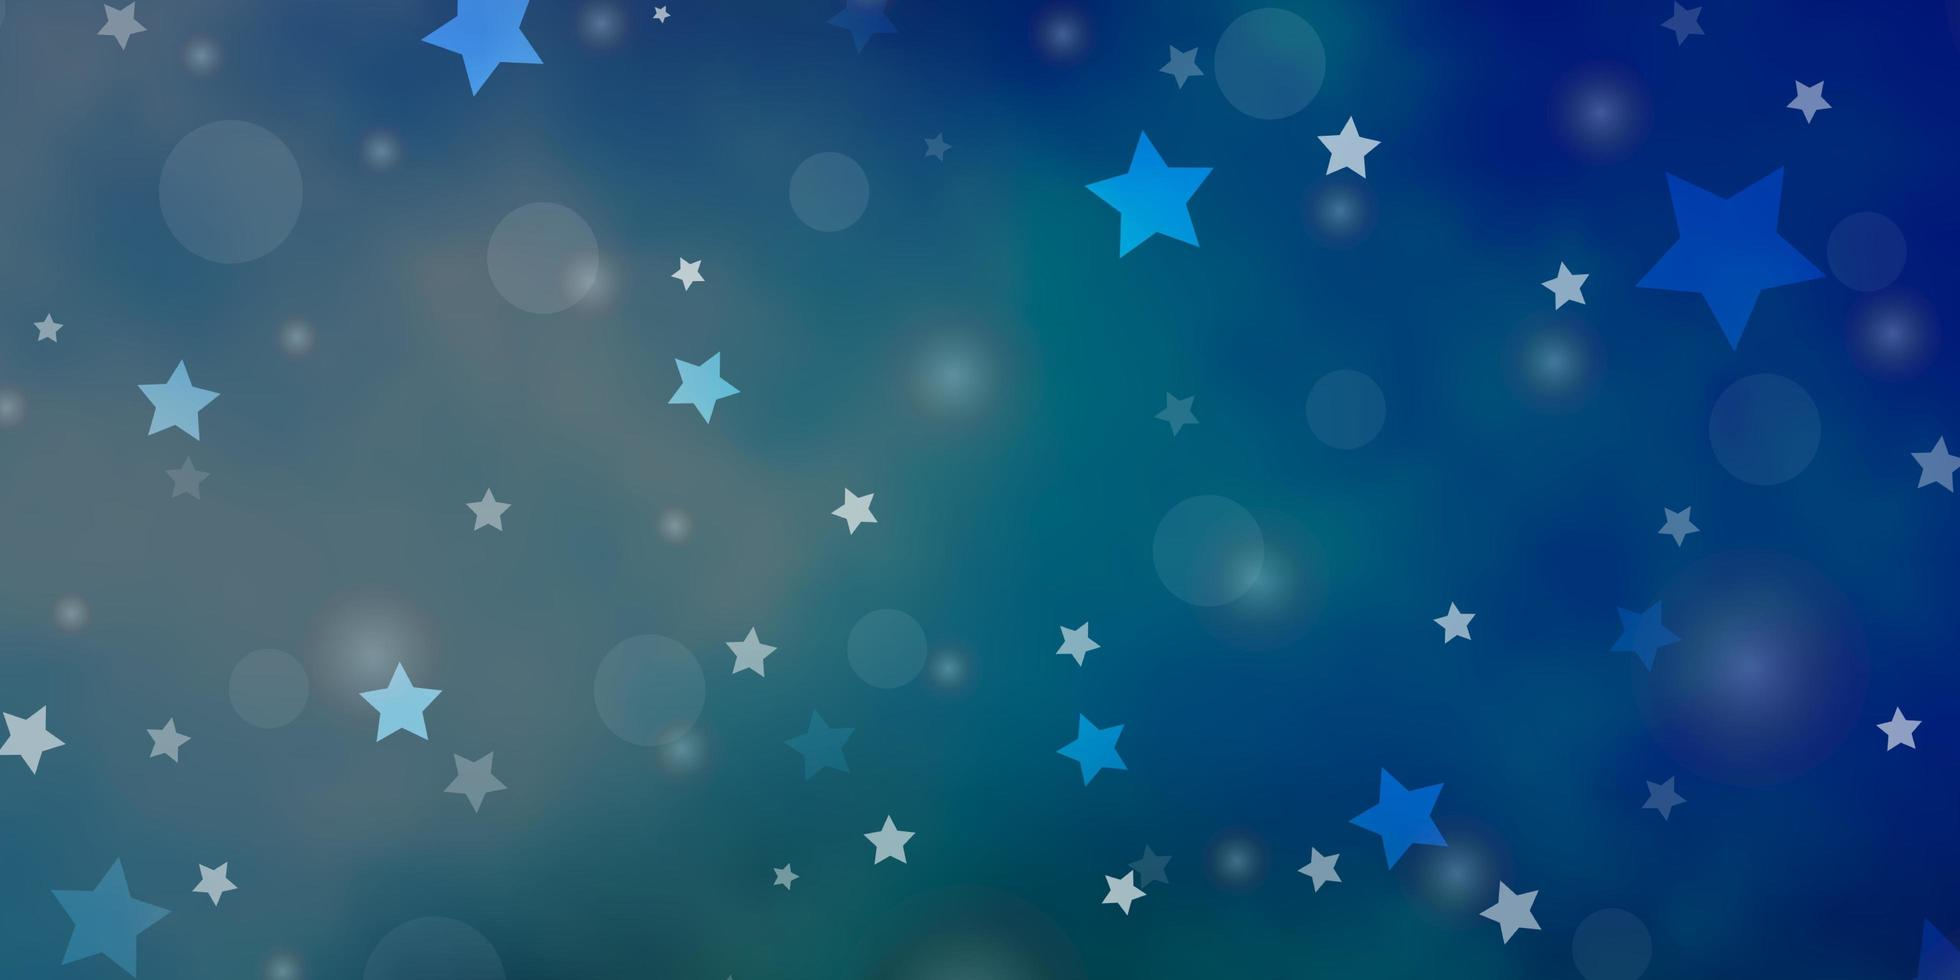 Light Blue, Green vector backdrop with circles, stars.